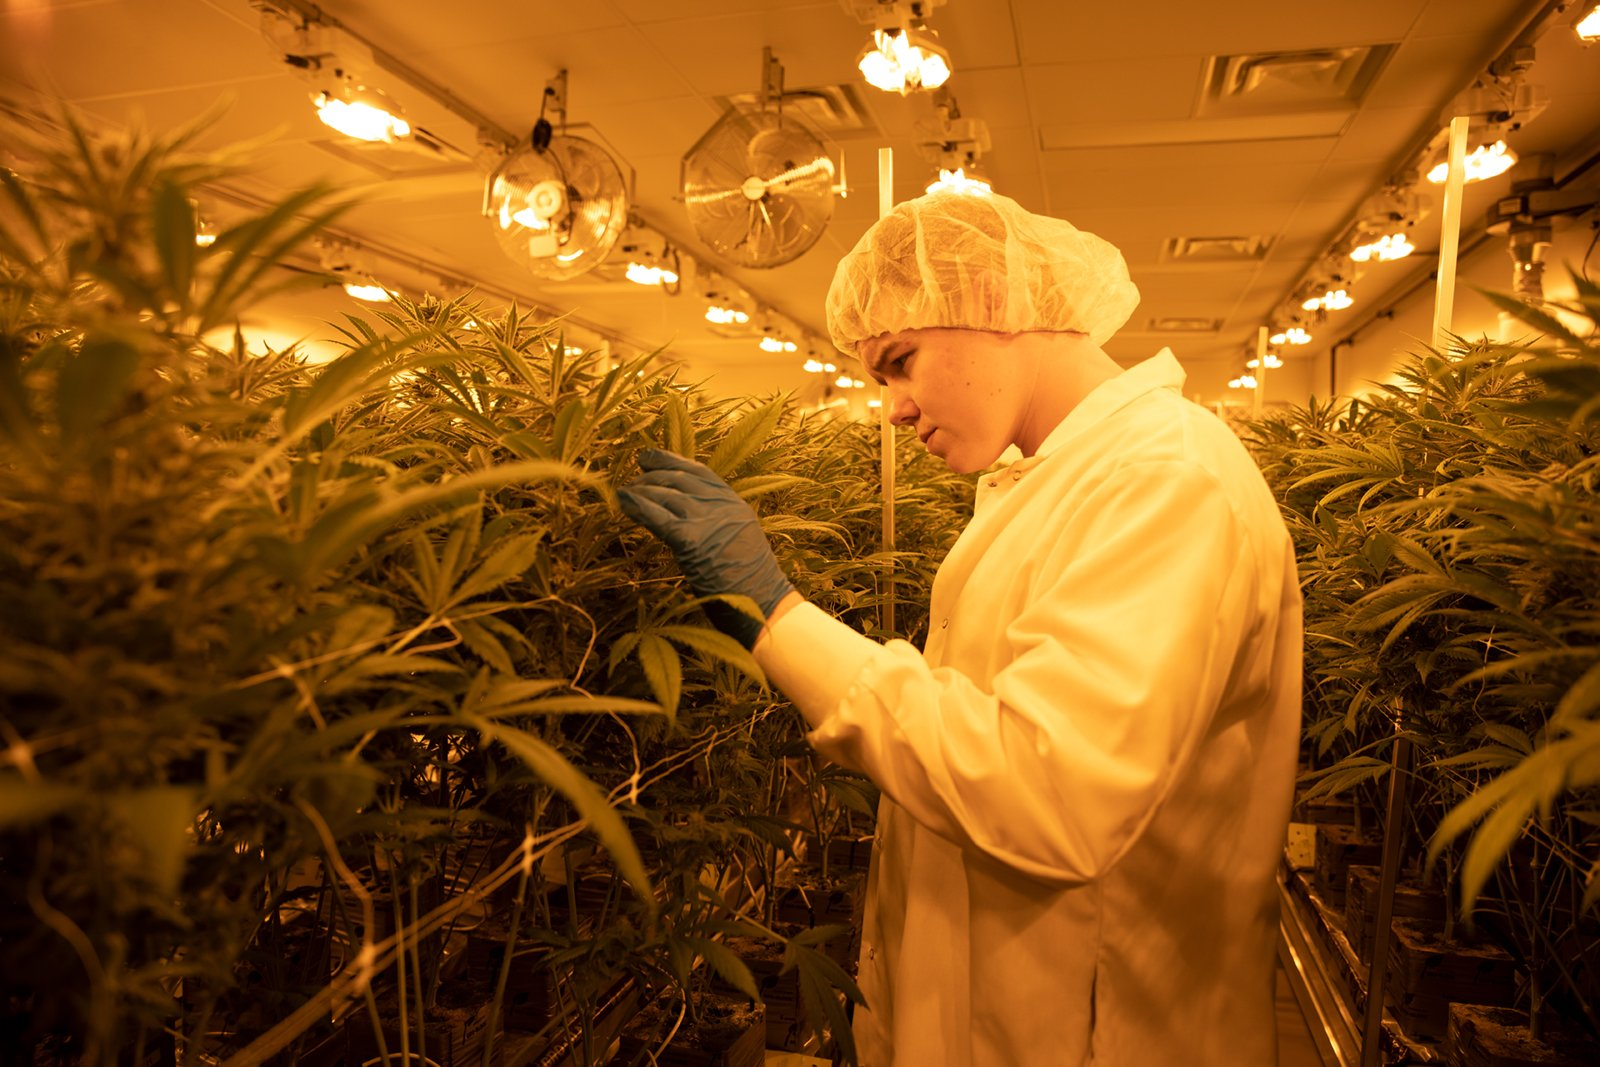 Worker inspecting cannabis plant - All images are from JC Green Inc featuring cannabis cultivated in Thorndale, Ontario using next-generation growing techniques and specializing in small-batch craft grown cannabis.